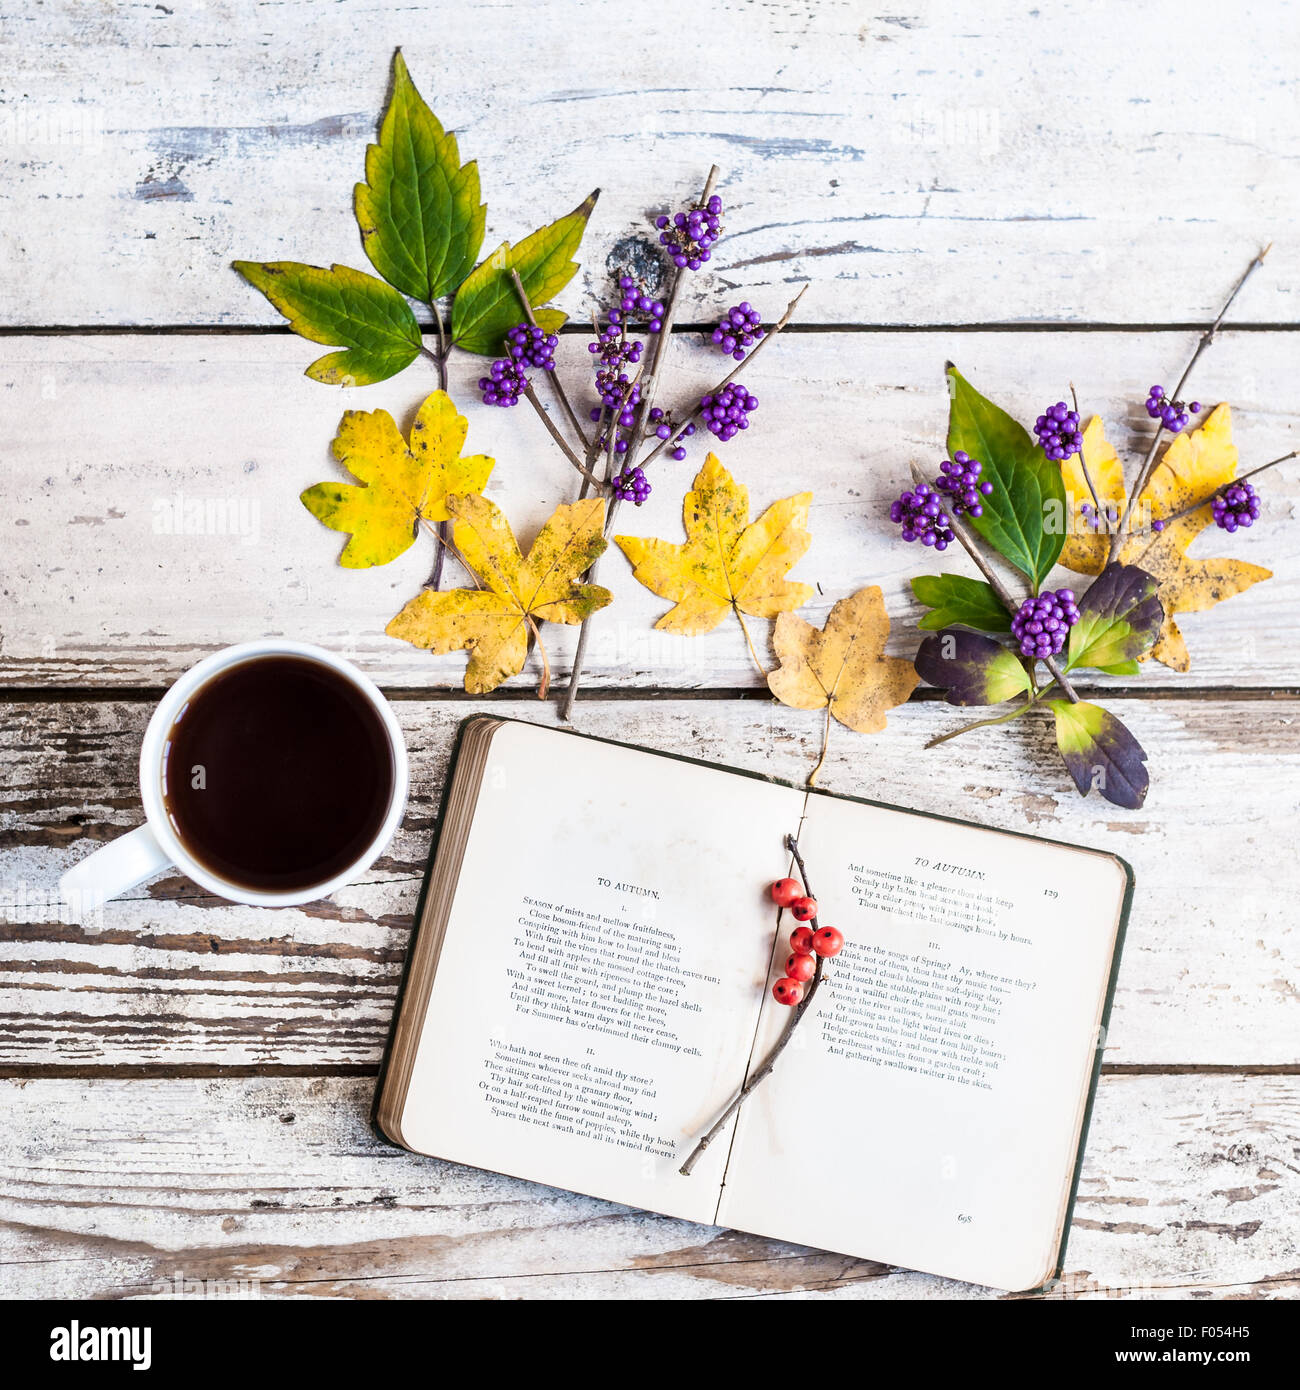 book open to poem To Autumn by J. Keats, with mug of coffee, leaves and berries - Stock Image